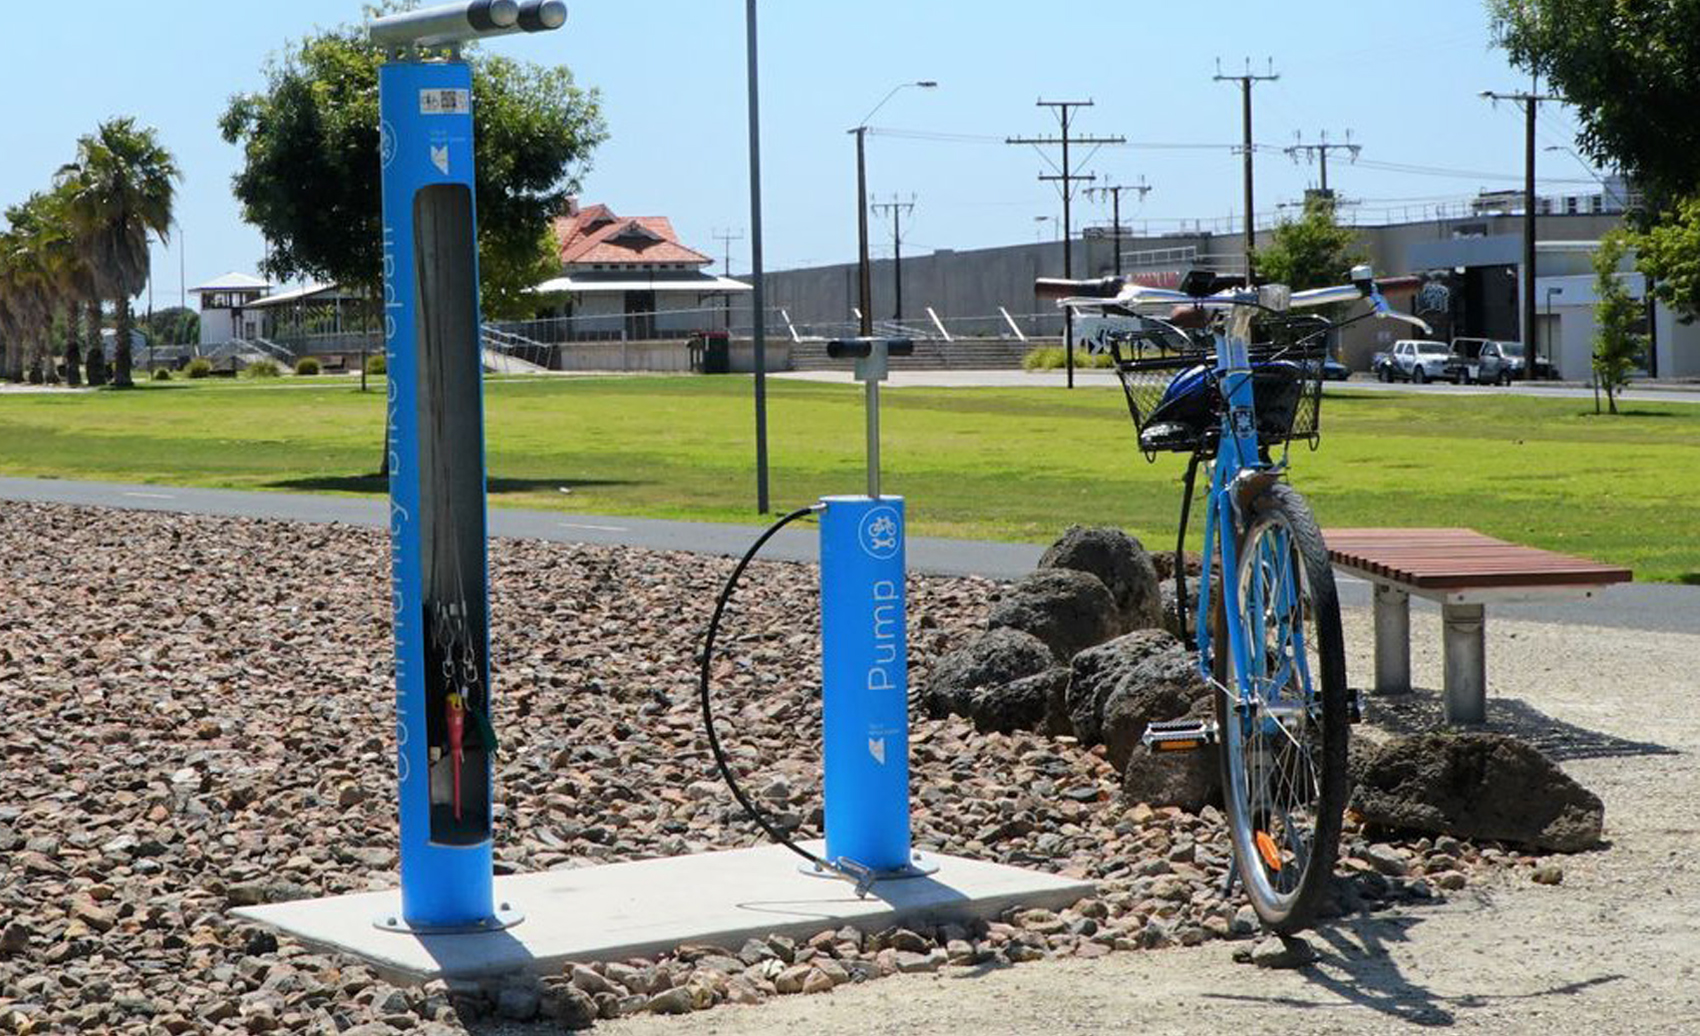 Cycla Fixit Maintenance and Repair Station with Bike Air Pump installed at Mount Gambier Rail Trail